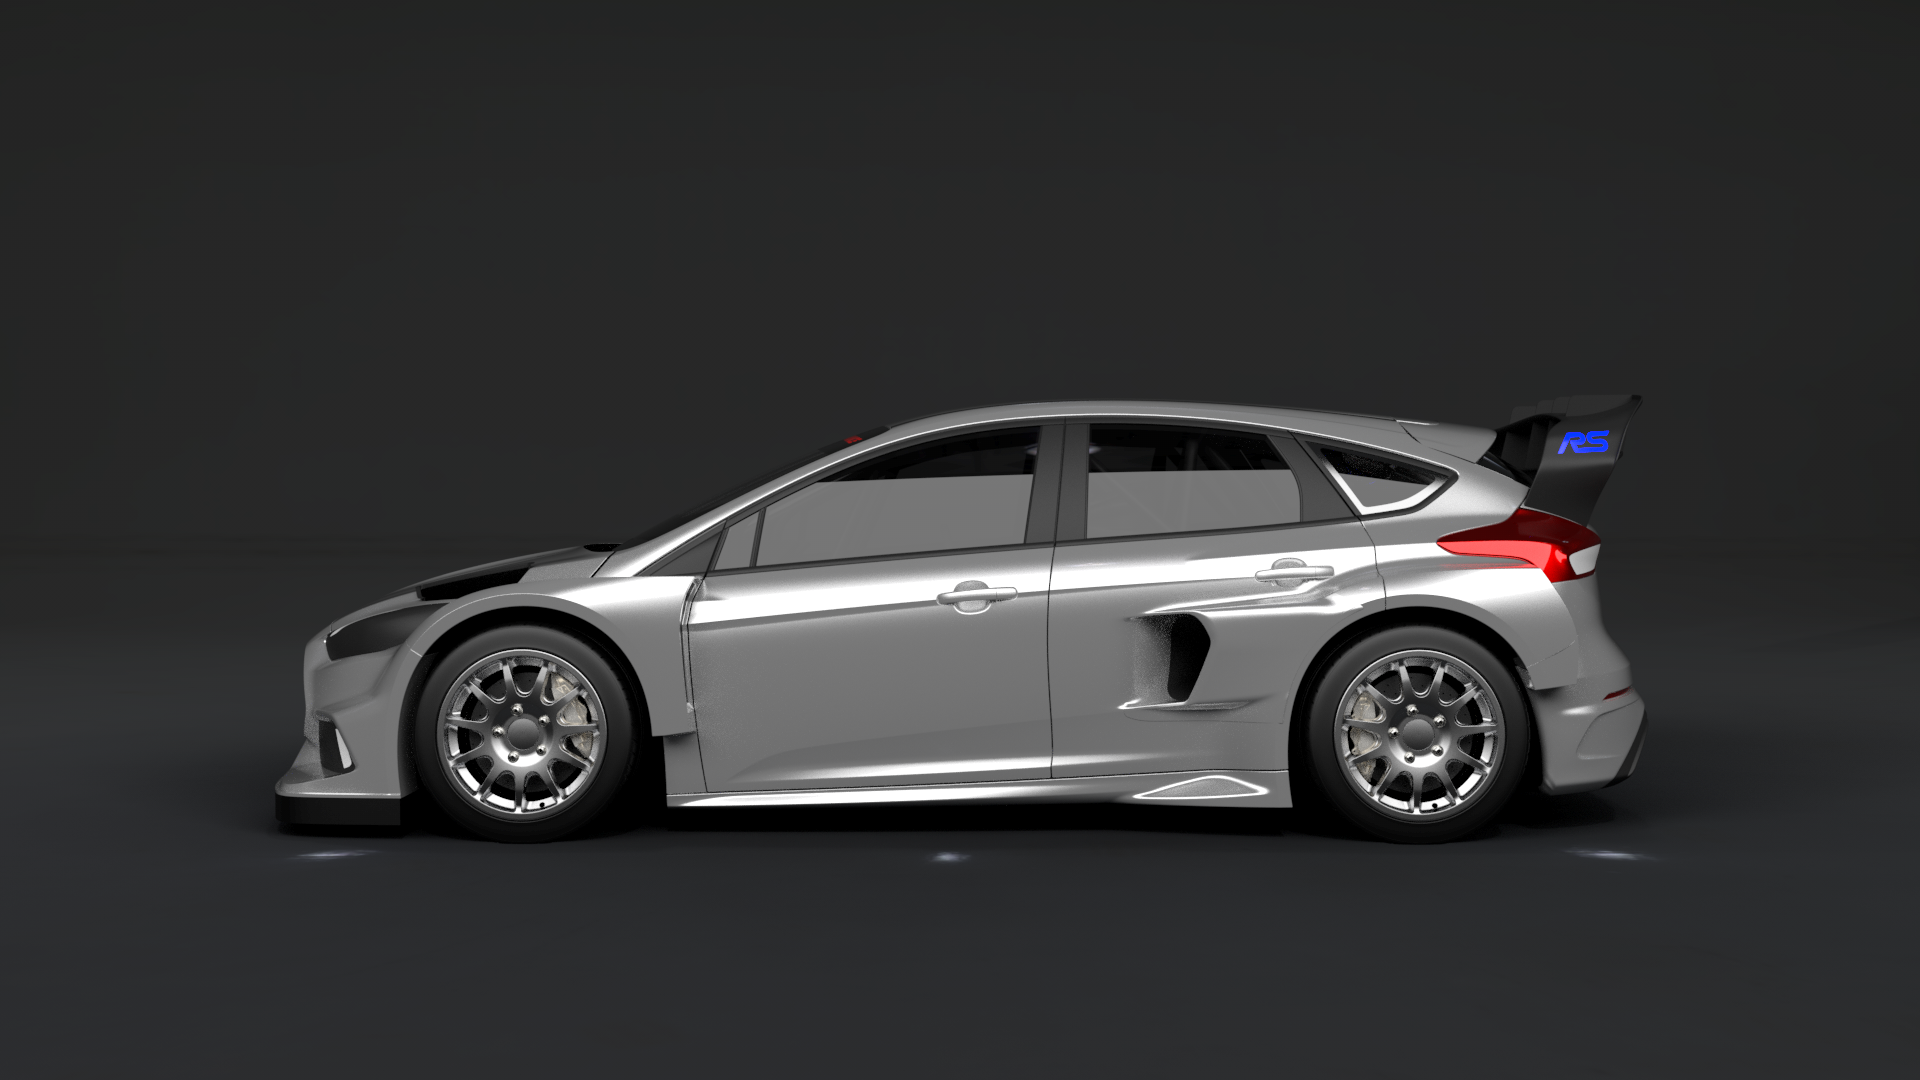 Ford Focus Rs Rallycross Wrx Block 2016 Les Voitures